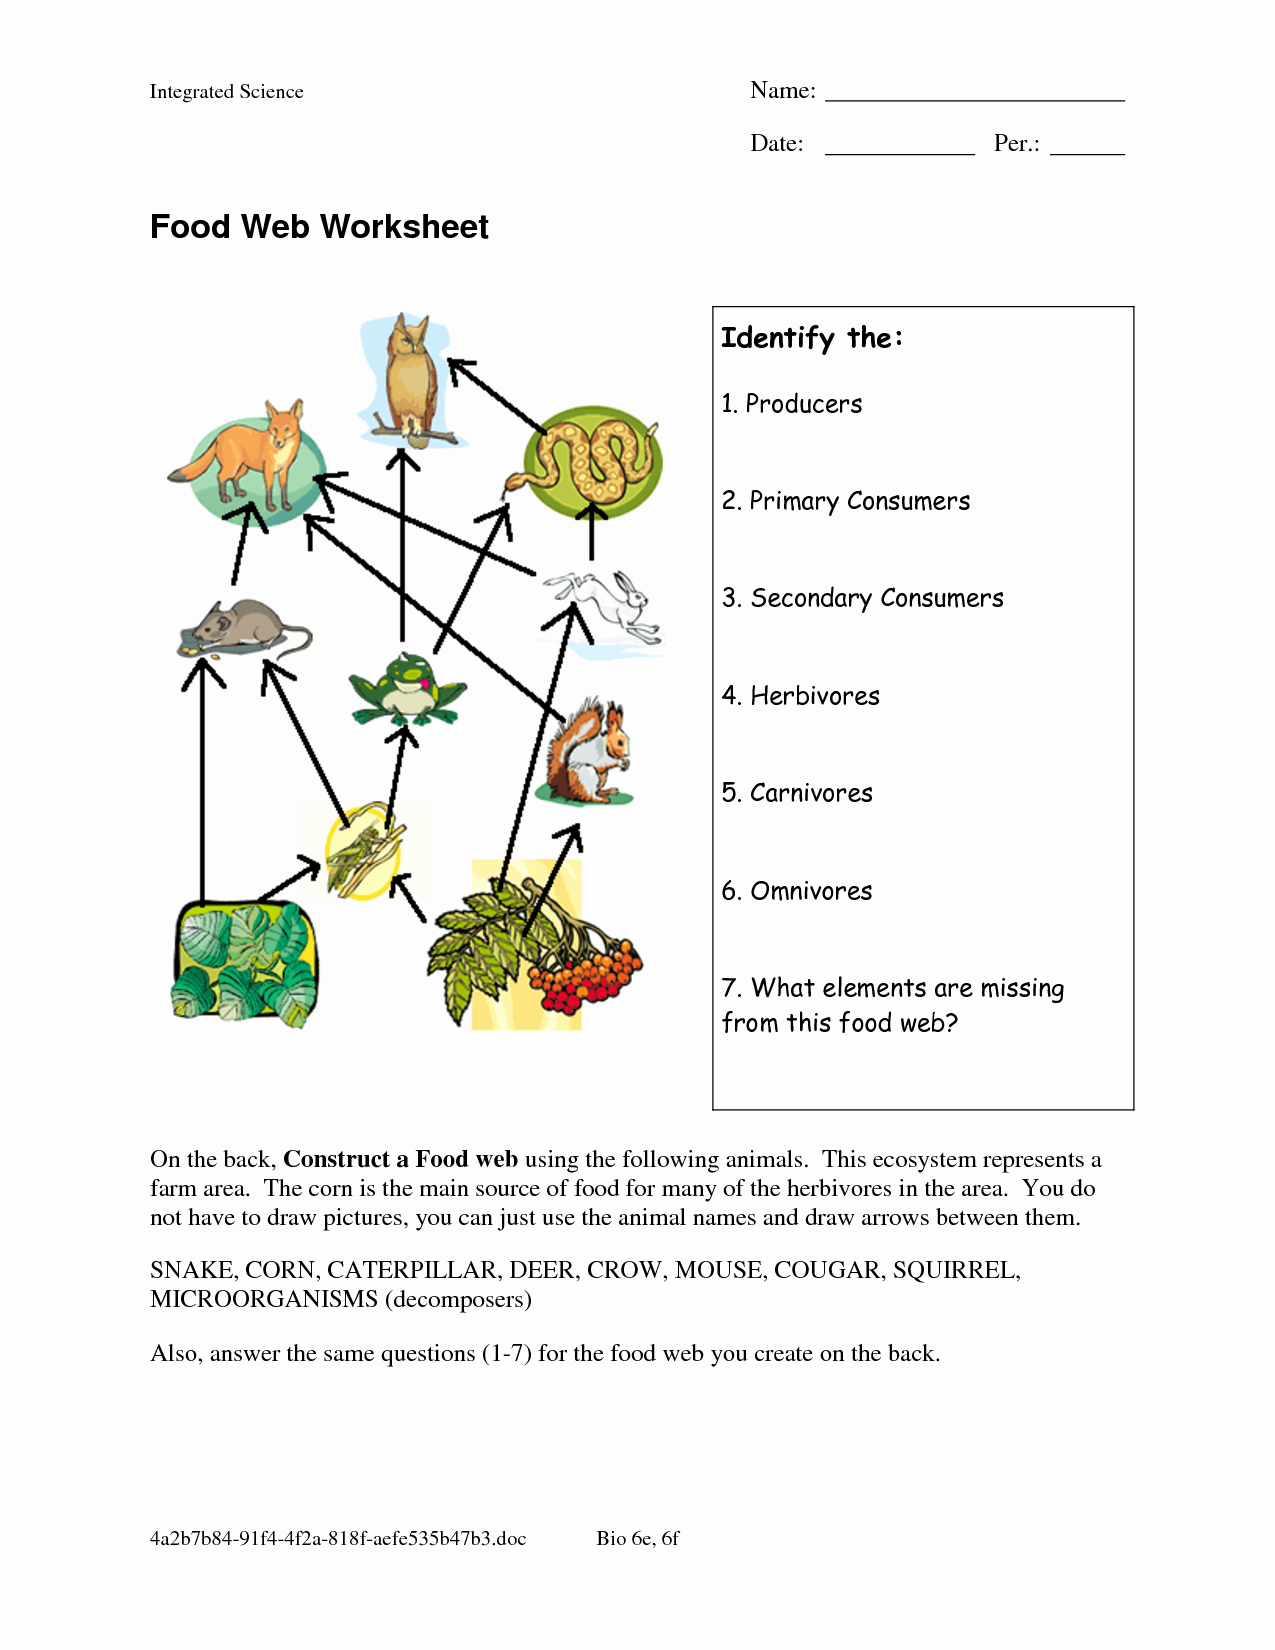 Food Web Worksheet High School Inspirational Food Web Worksheets